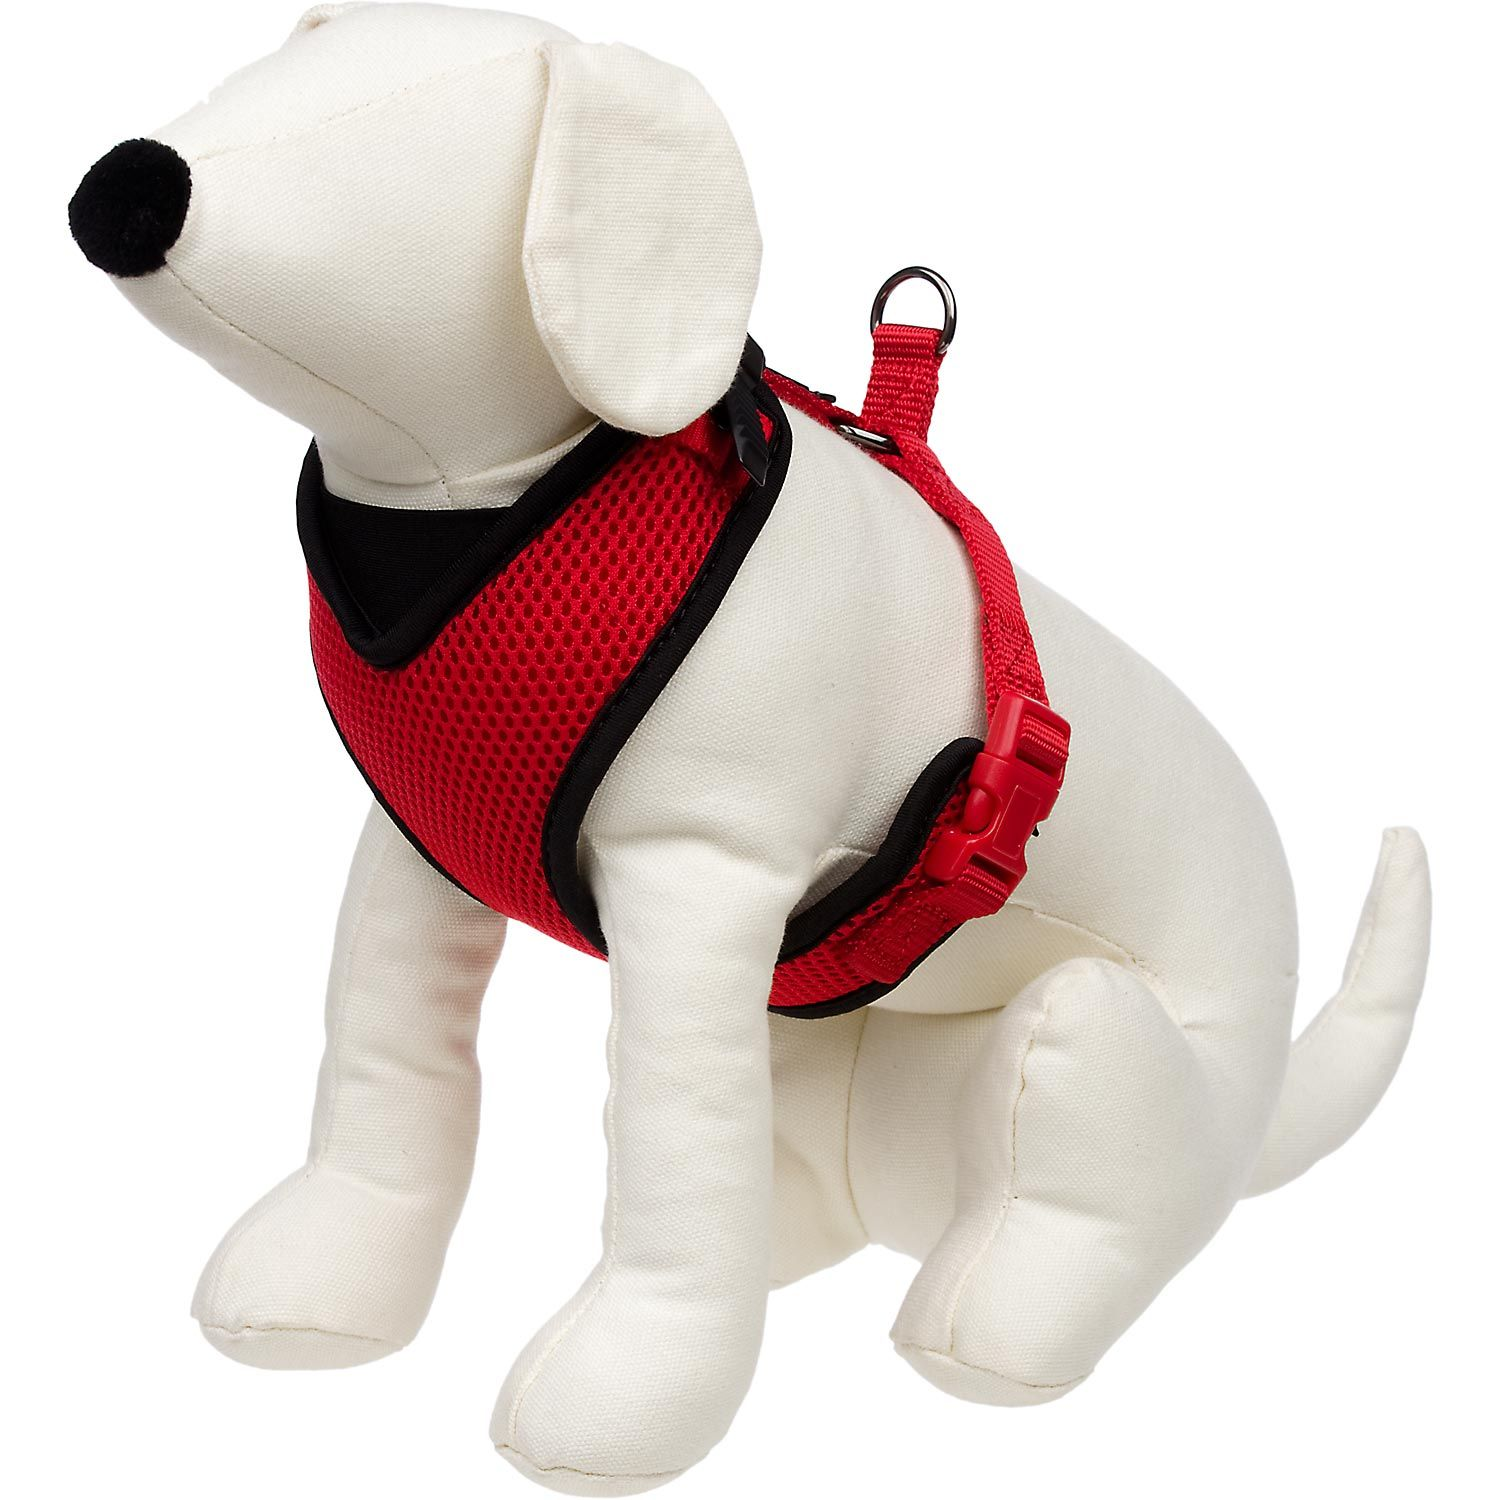 Petco Adjustable Mesh Harness For Dogs In Red Black Red Dog